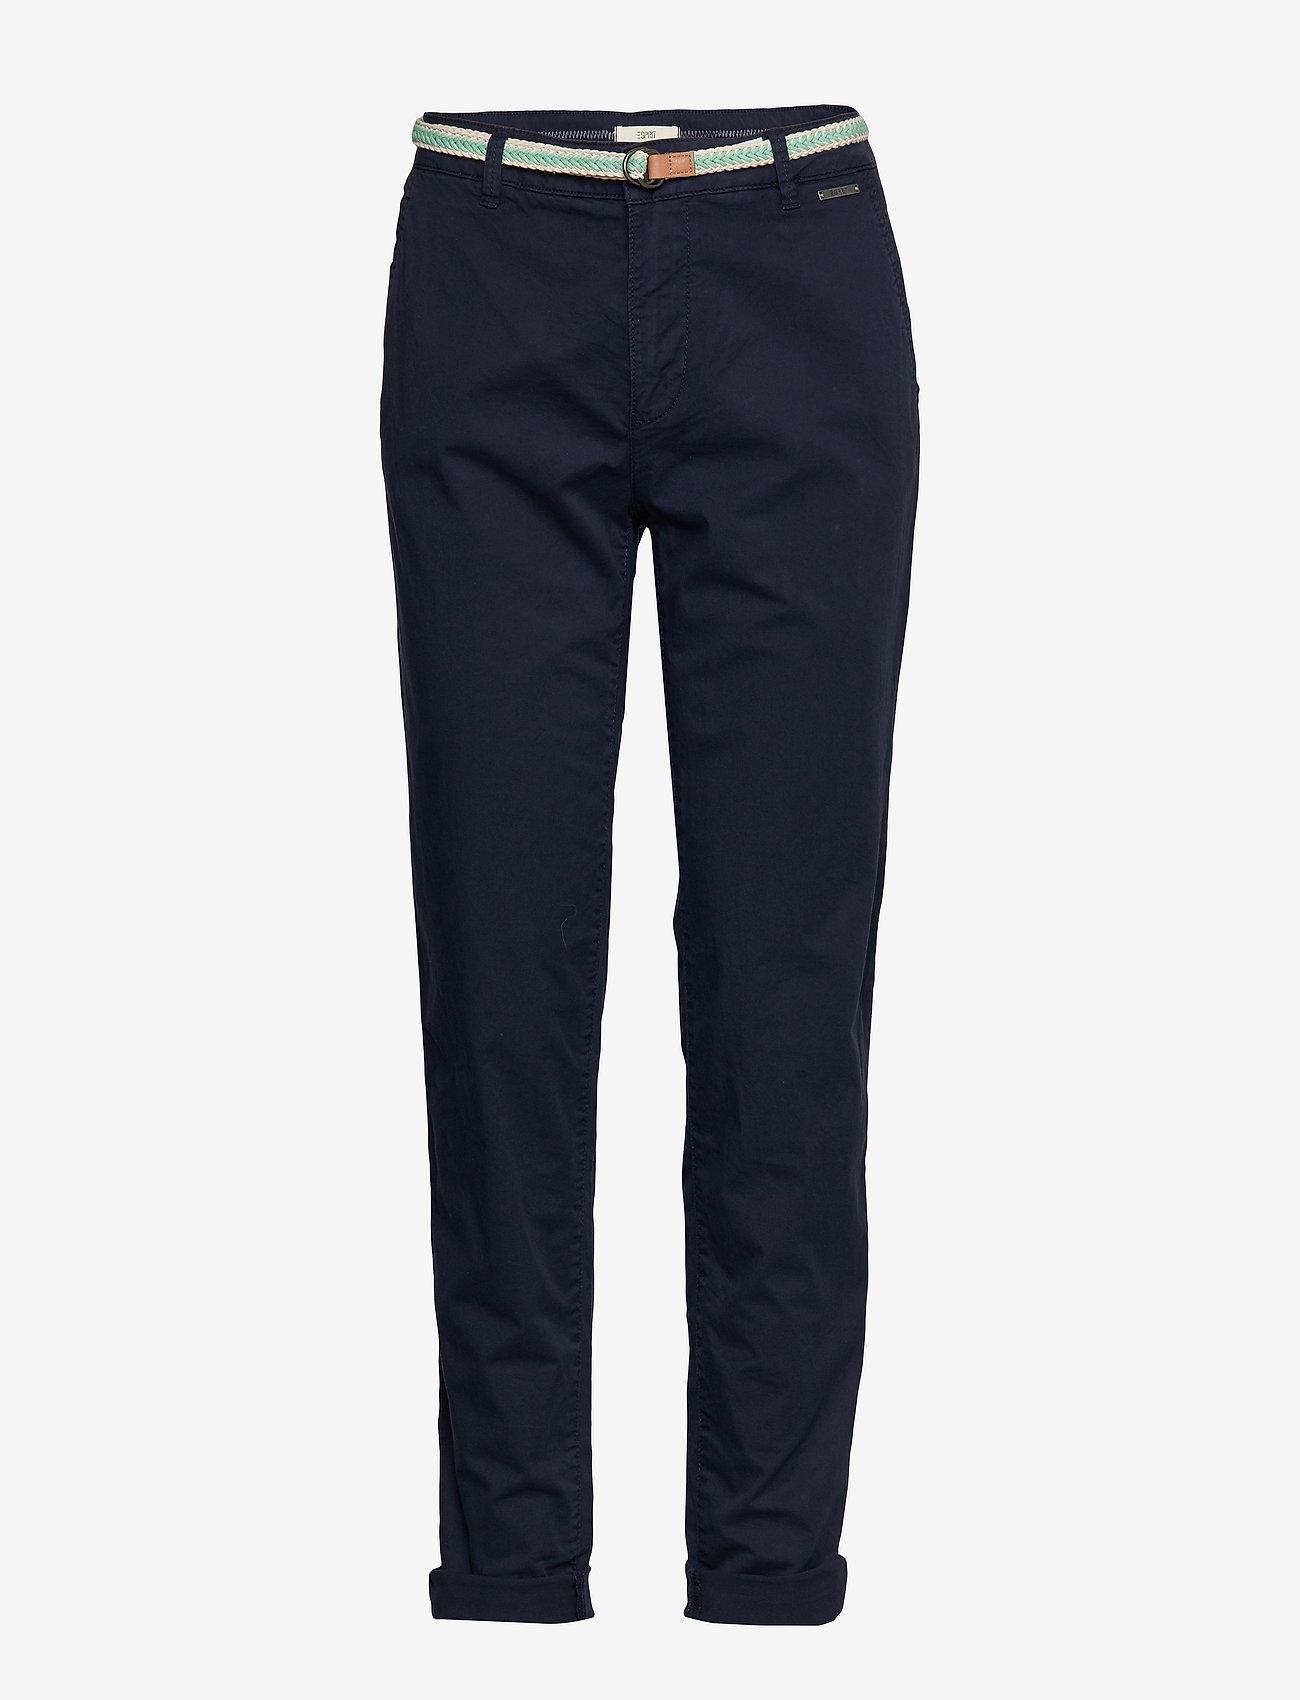 Esprit Casual - Pants woven - chinos - navy - 0